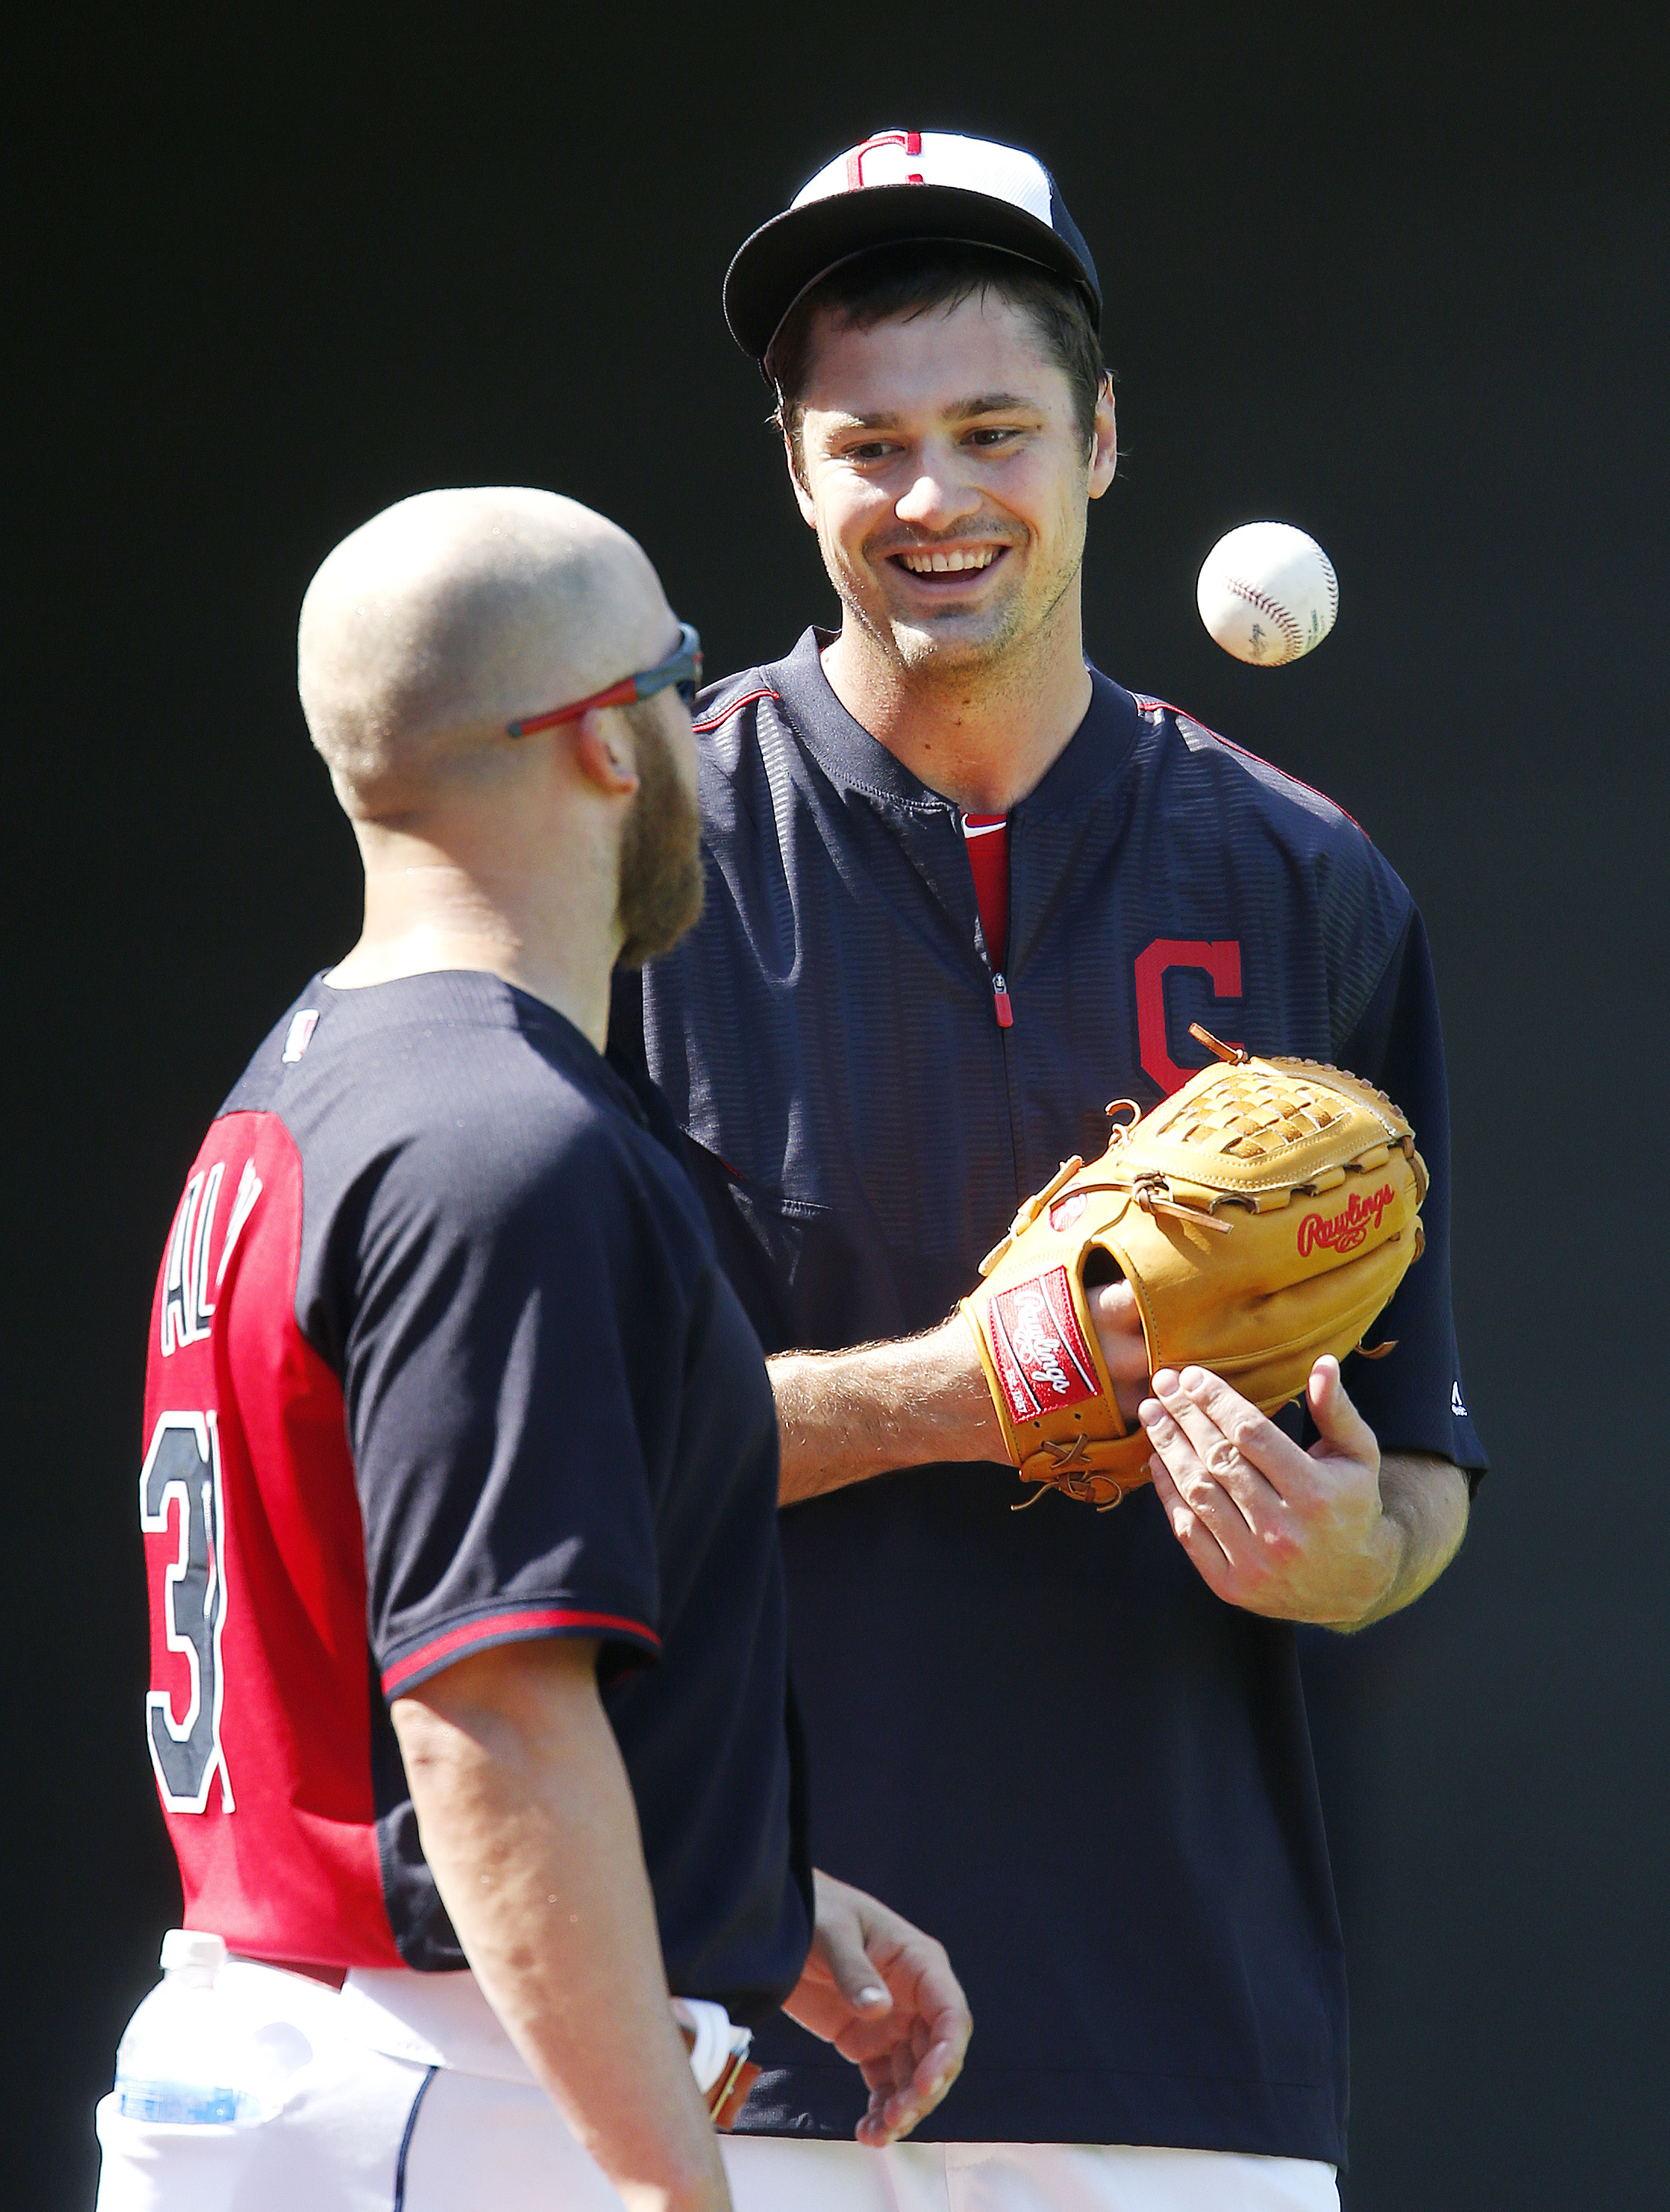 Cleveland Indians relief pitcher Andrew Miller, right, talks with relief pitcher Cody Allen during batting practice before a baseball game against the Minnesota Twins, Monday, Aug. 1, 2016, in Cleveland. (AP Photo/Ron Schwane)